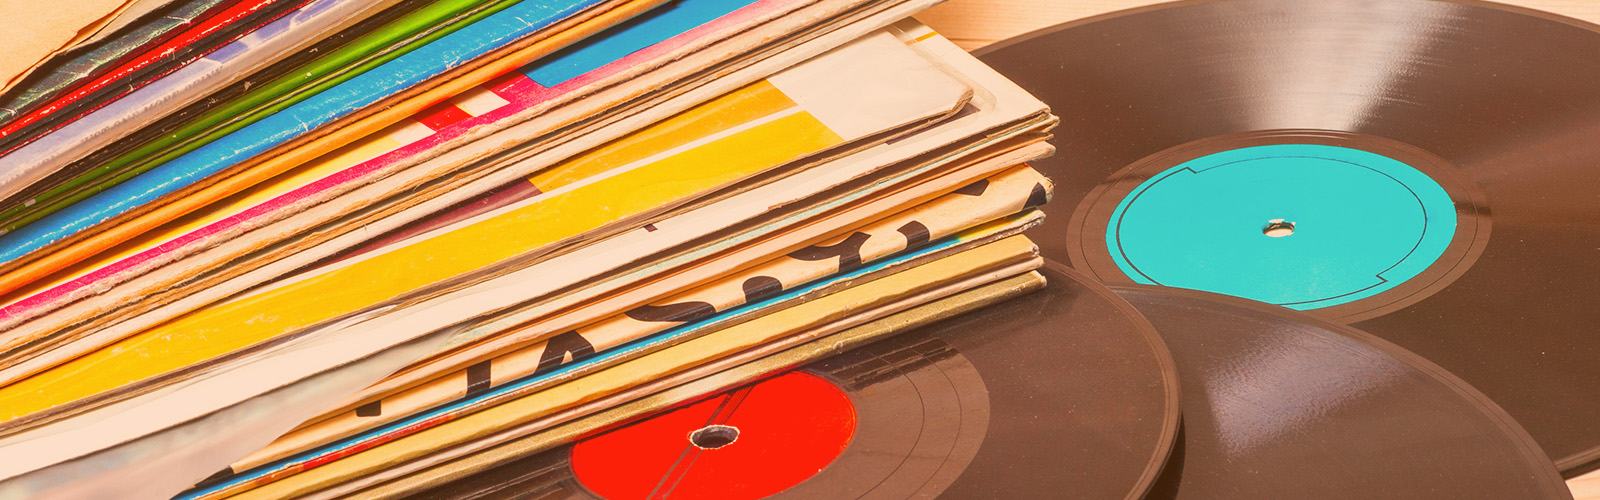 3 Proven Release Strategies for Musicians and Record Labels